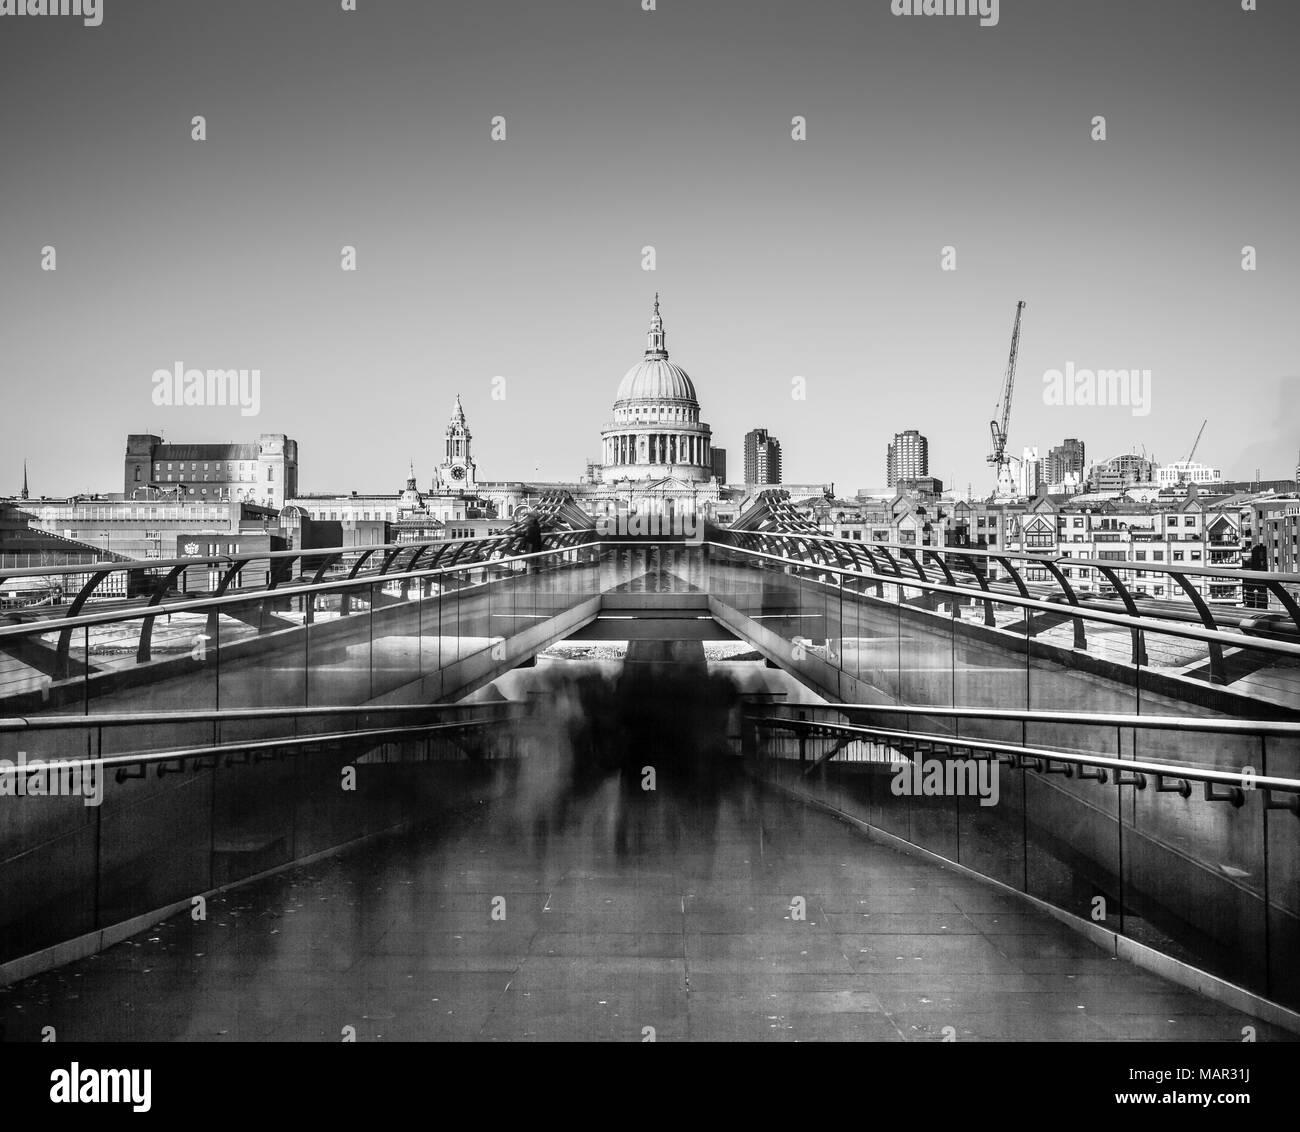 Ghostly figures going to work in long exposure image of St. Paul's from Millennium Bridge, City of London, London, England, United Kingdom, Europe Stock Photo